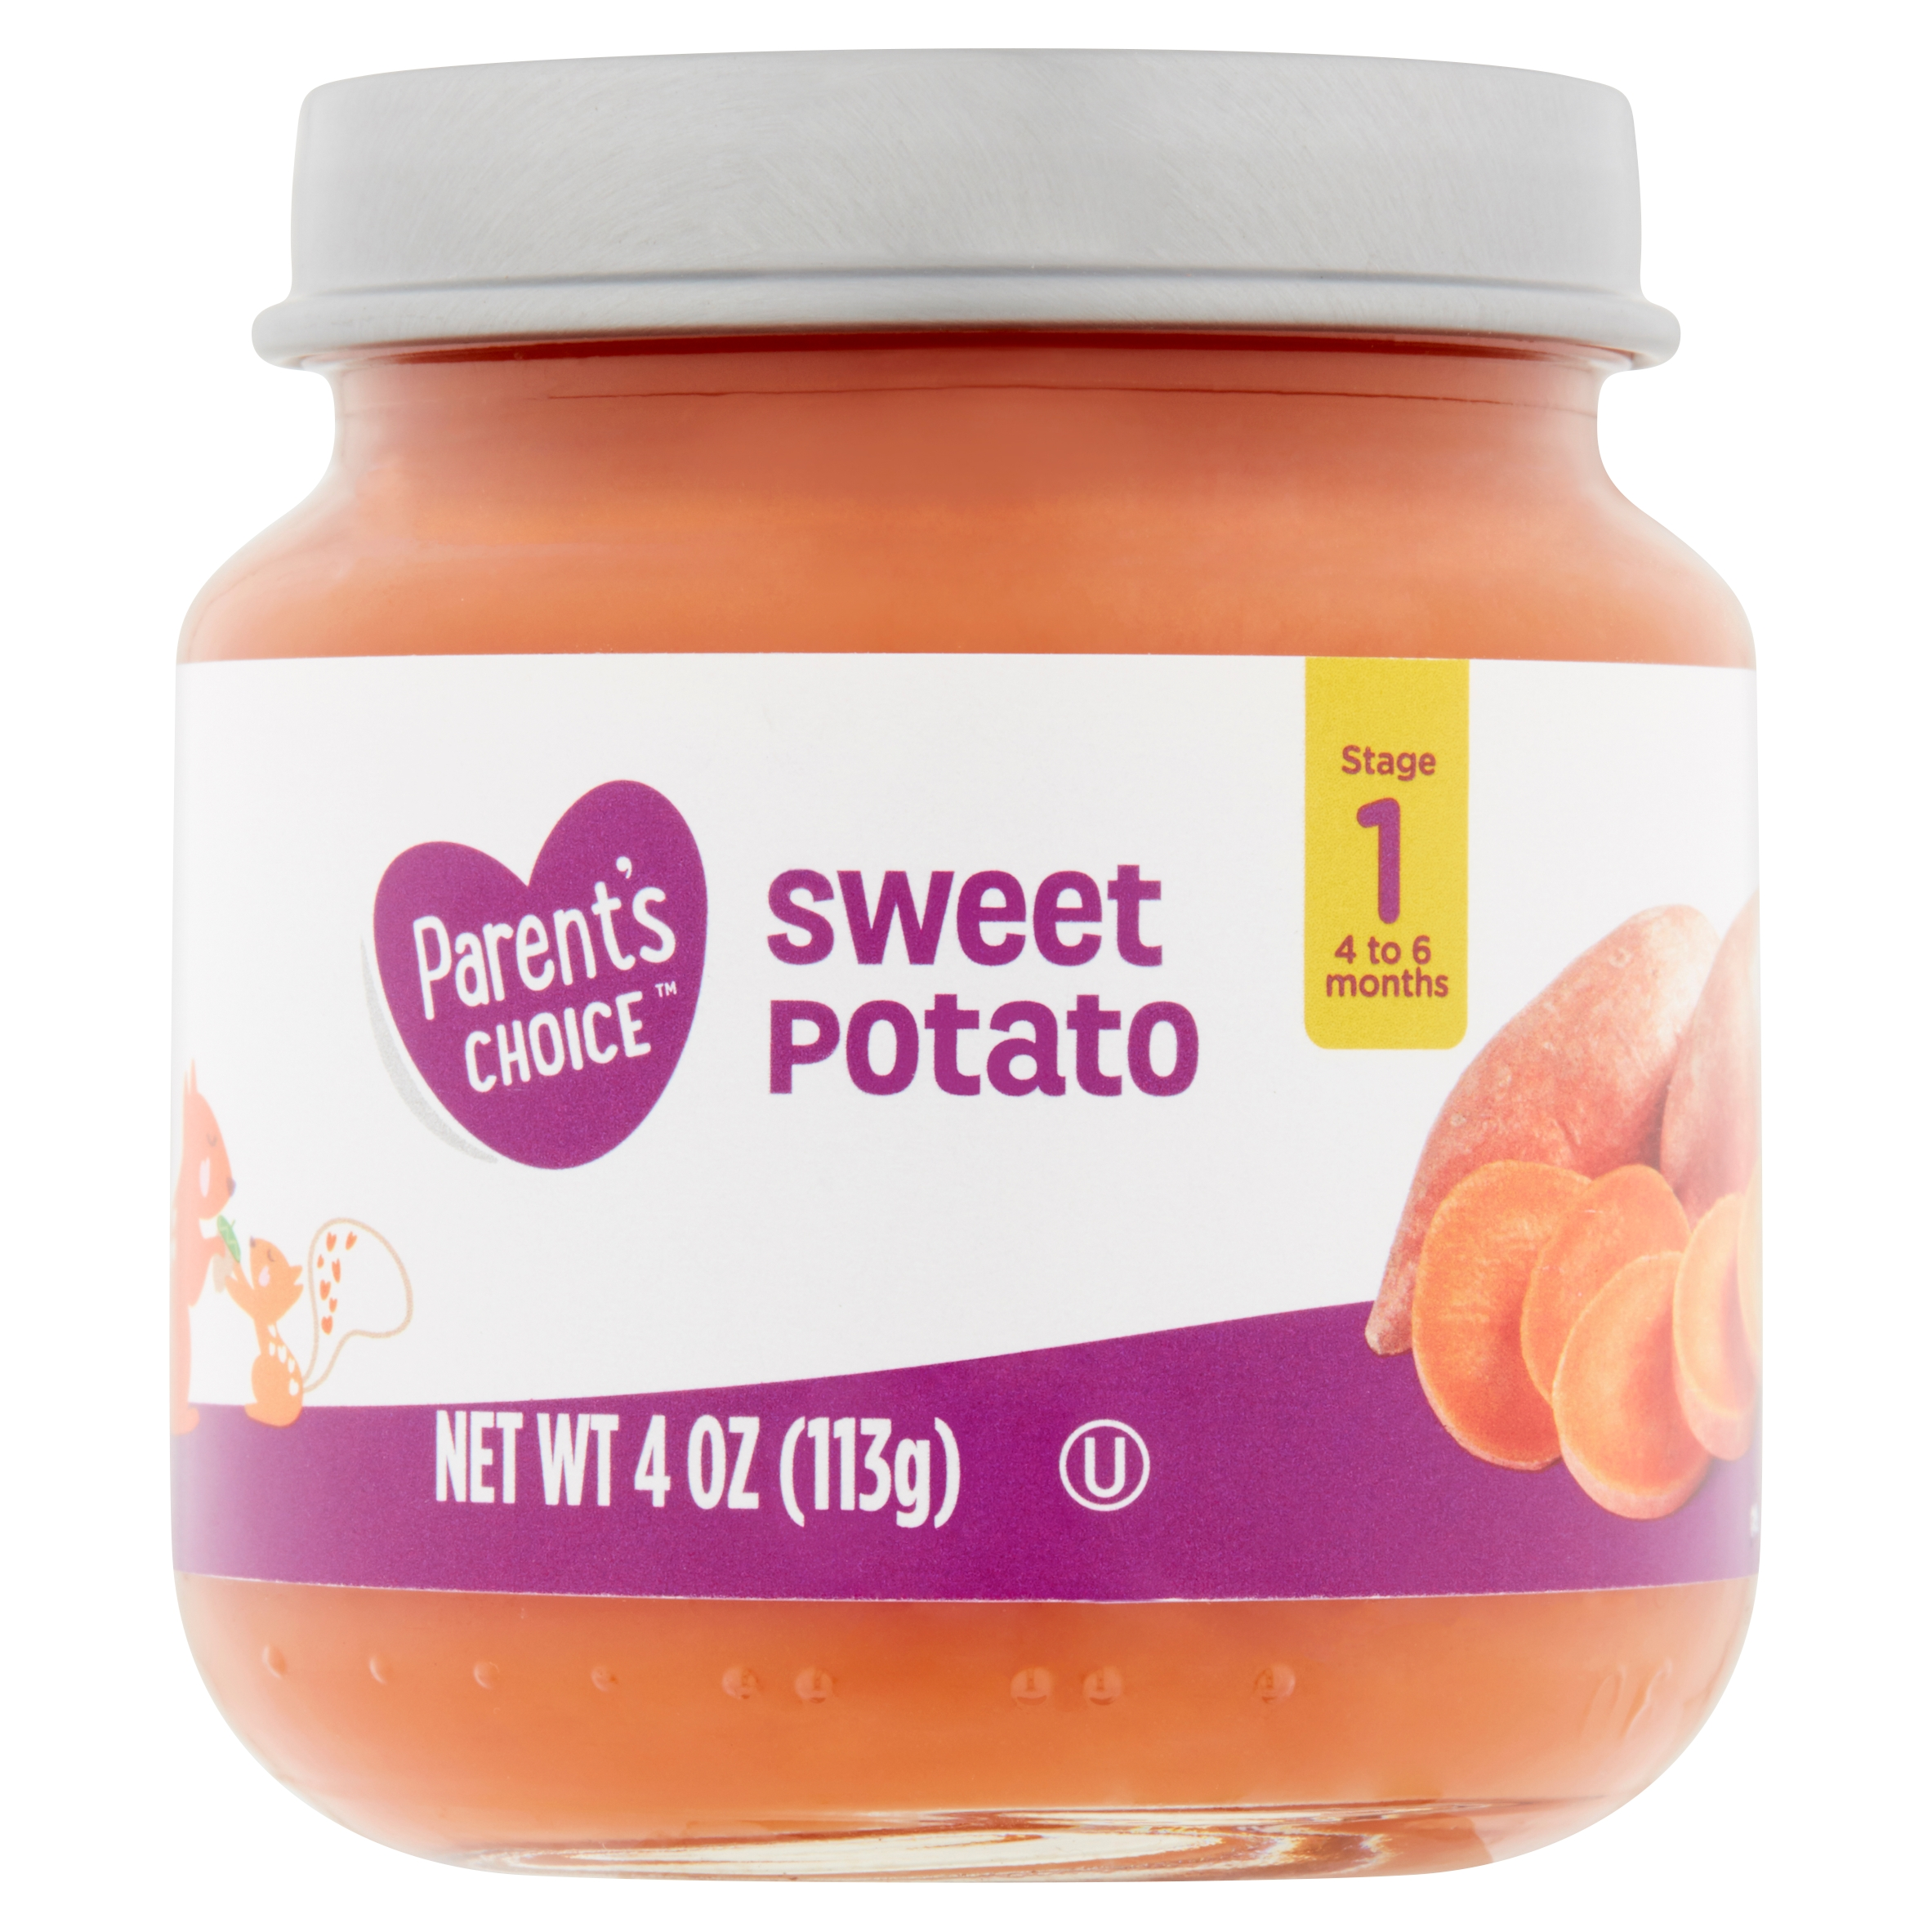 Parent's Choice Baby Food, Sweet Potato, Stage 1, 4 oz